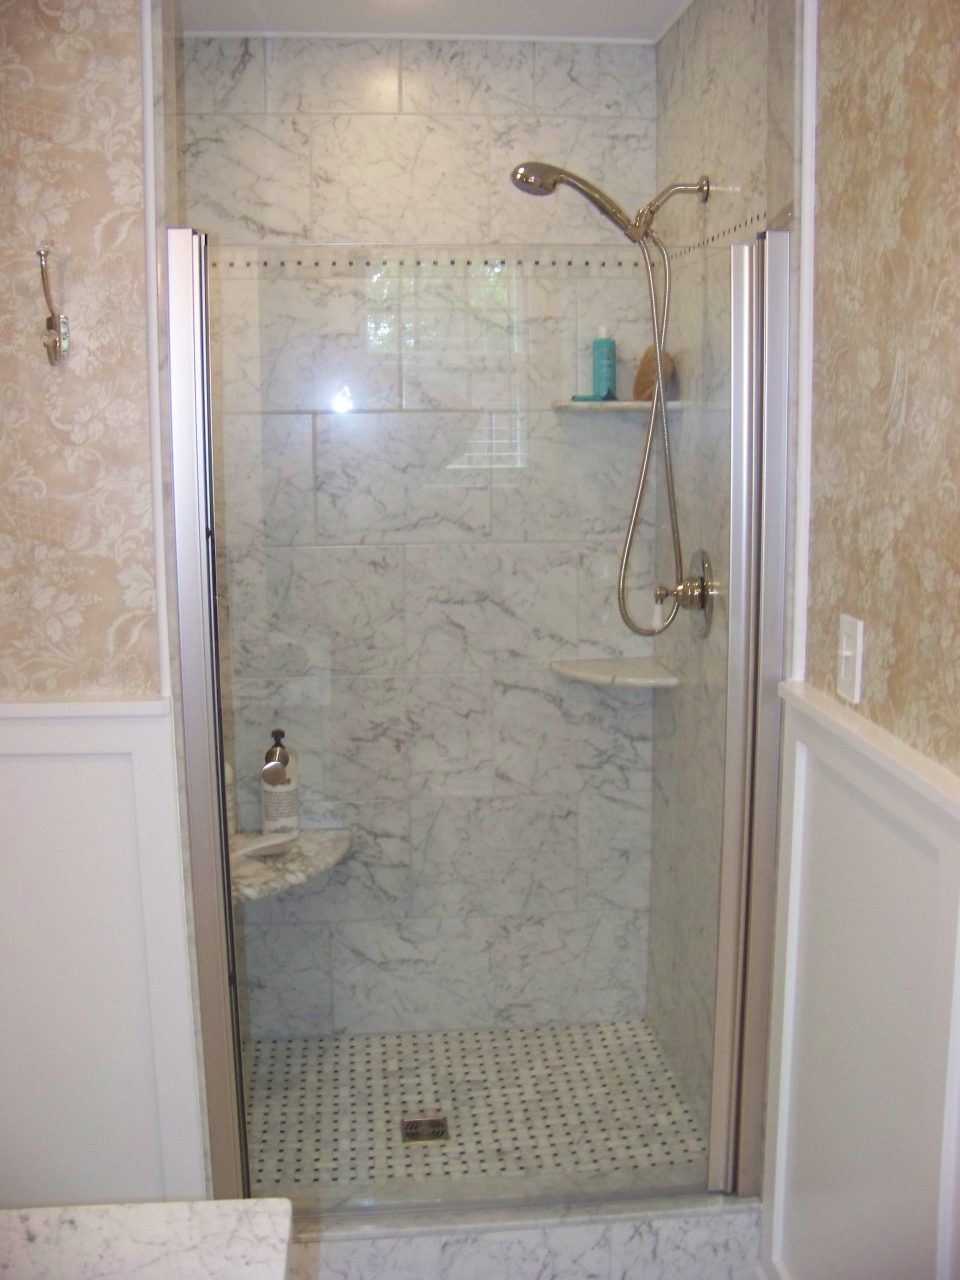 Narrow Tiled Shower Stall With Corner Wall Shelves For Small